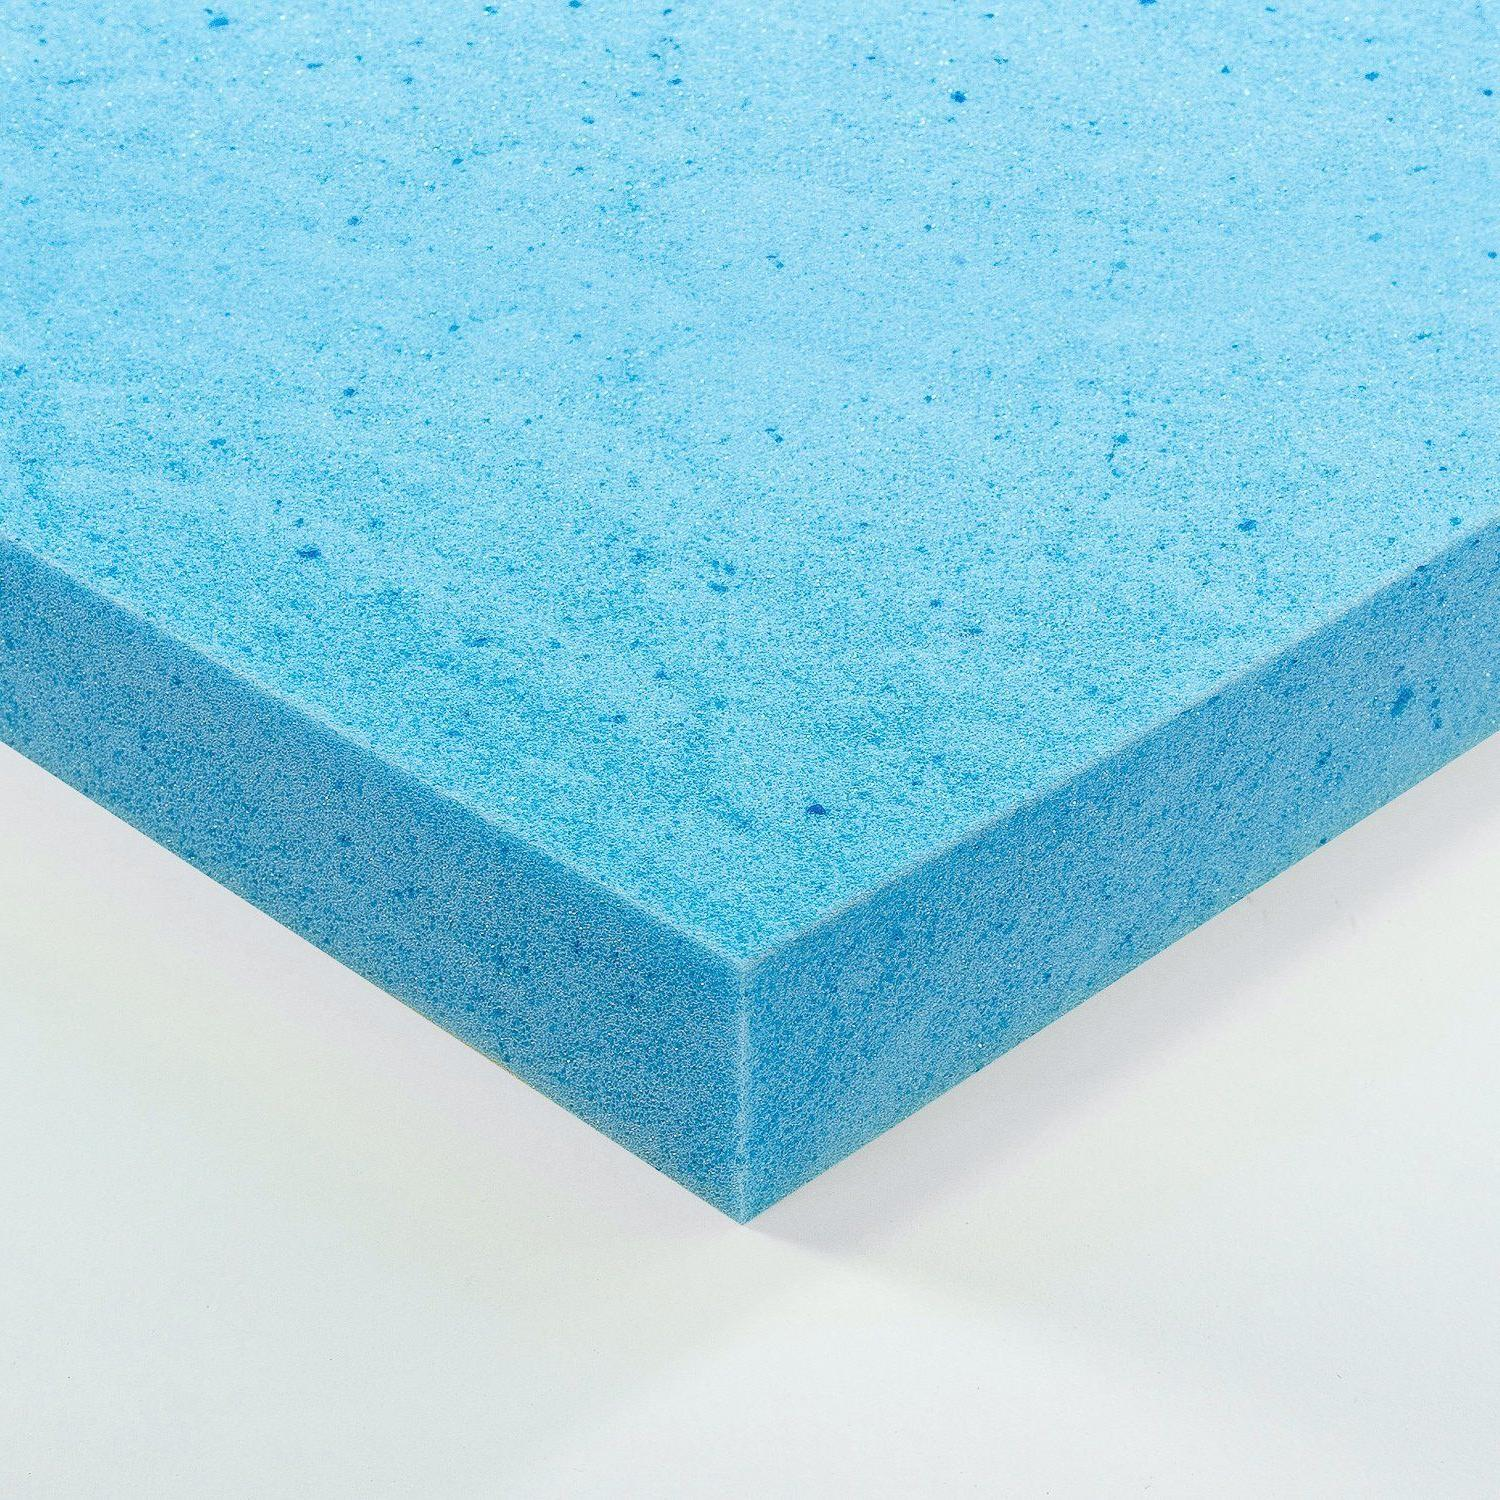 Mattress Gel Foam Topper Cooling Comfortable Airbed Pad